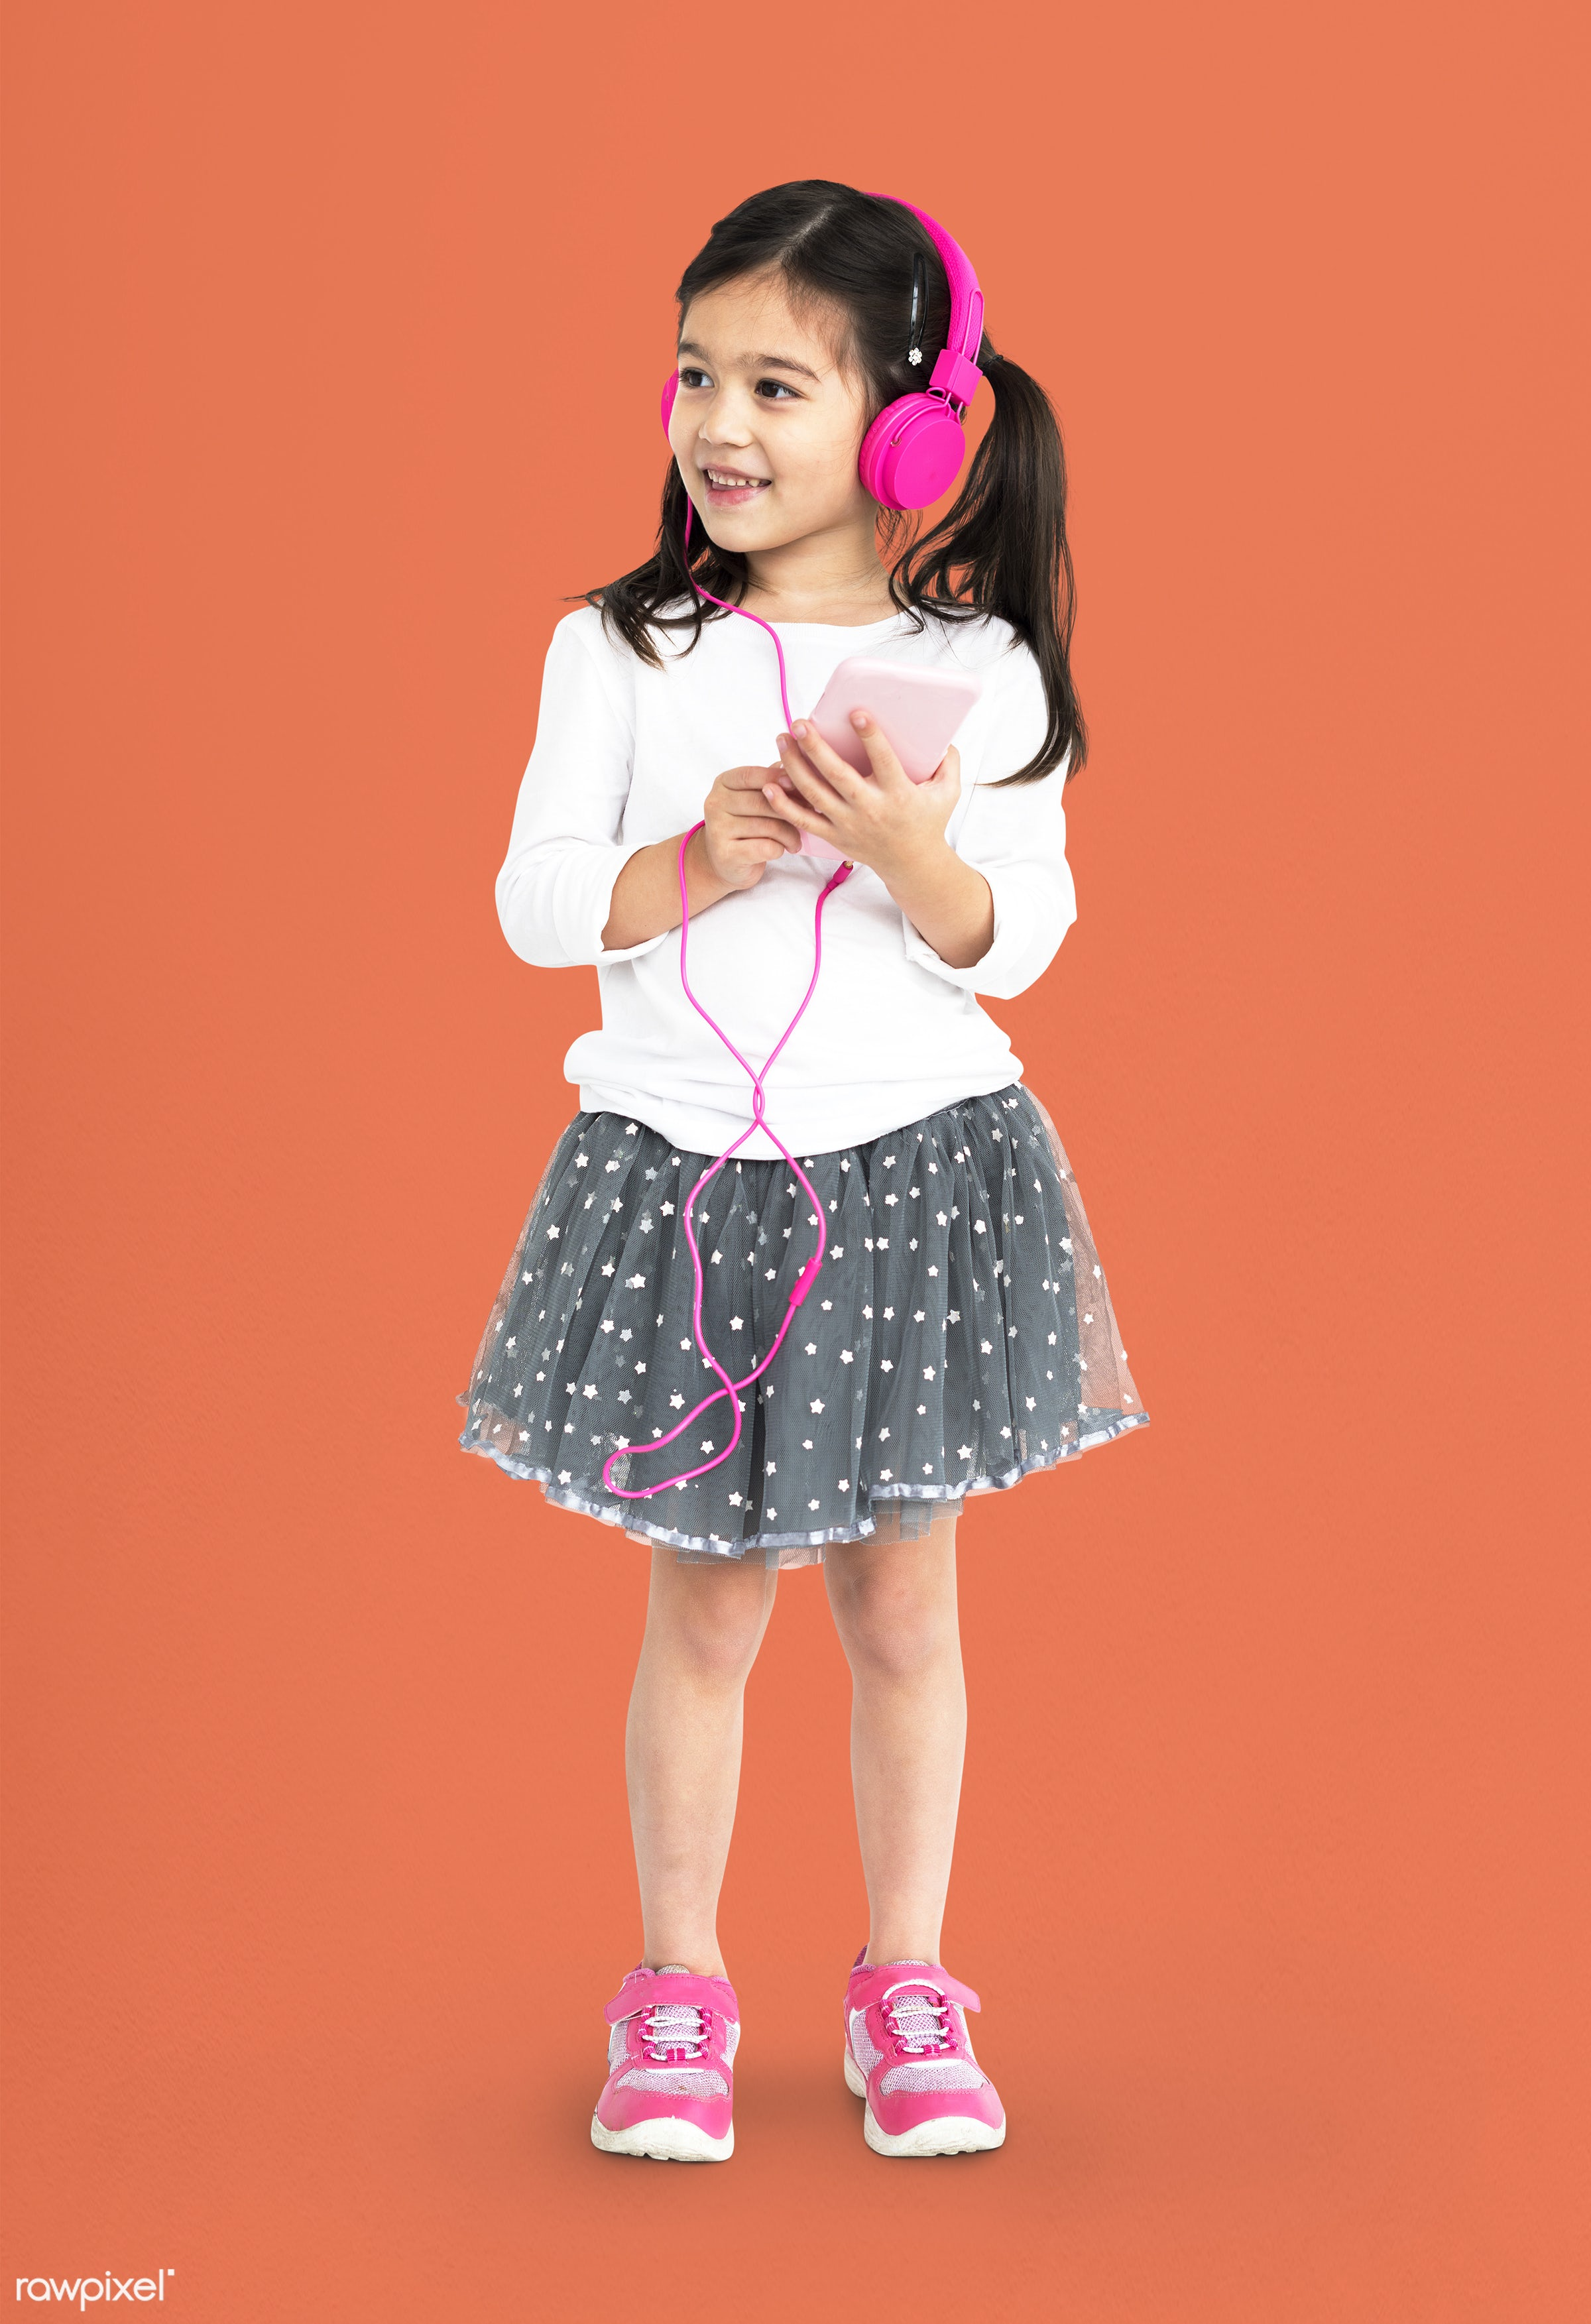 alone, asian, cheerful, child, children, girl, isolated, kid, one, playful, smiling, young, youth, listen, music, headphones...